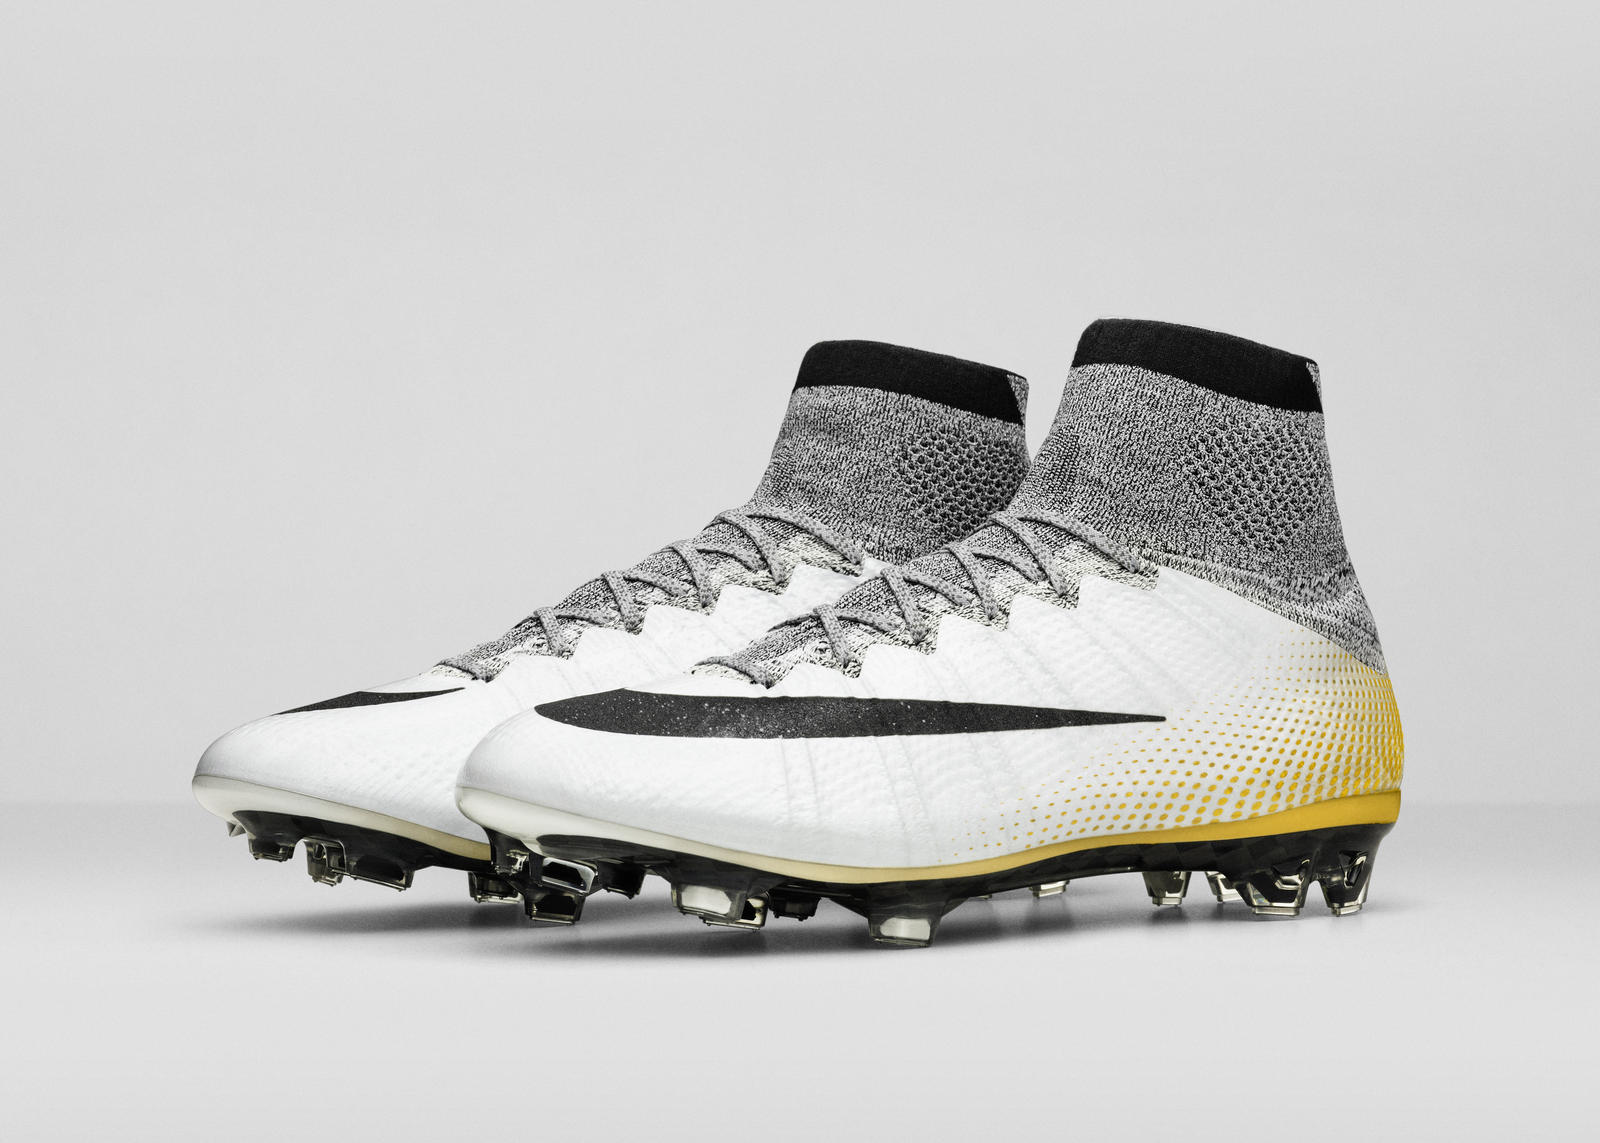 Nike Superfly Cr7 Gold Pair View 06 V2